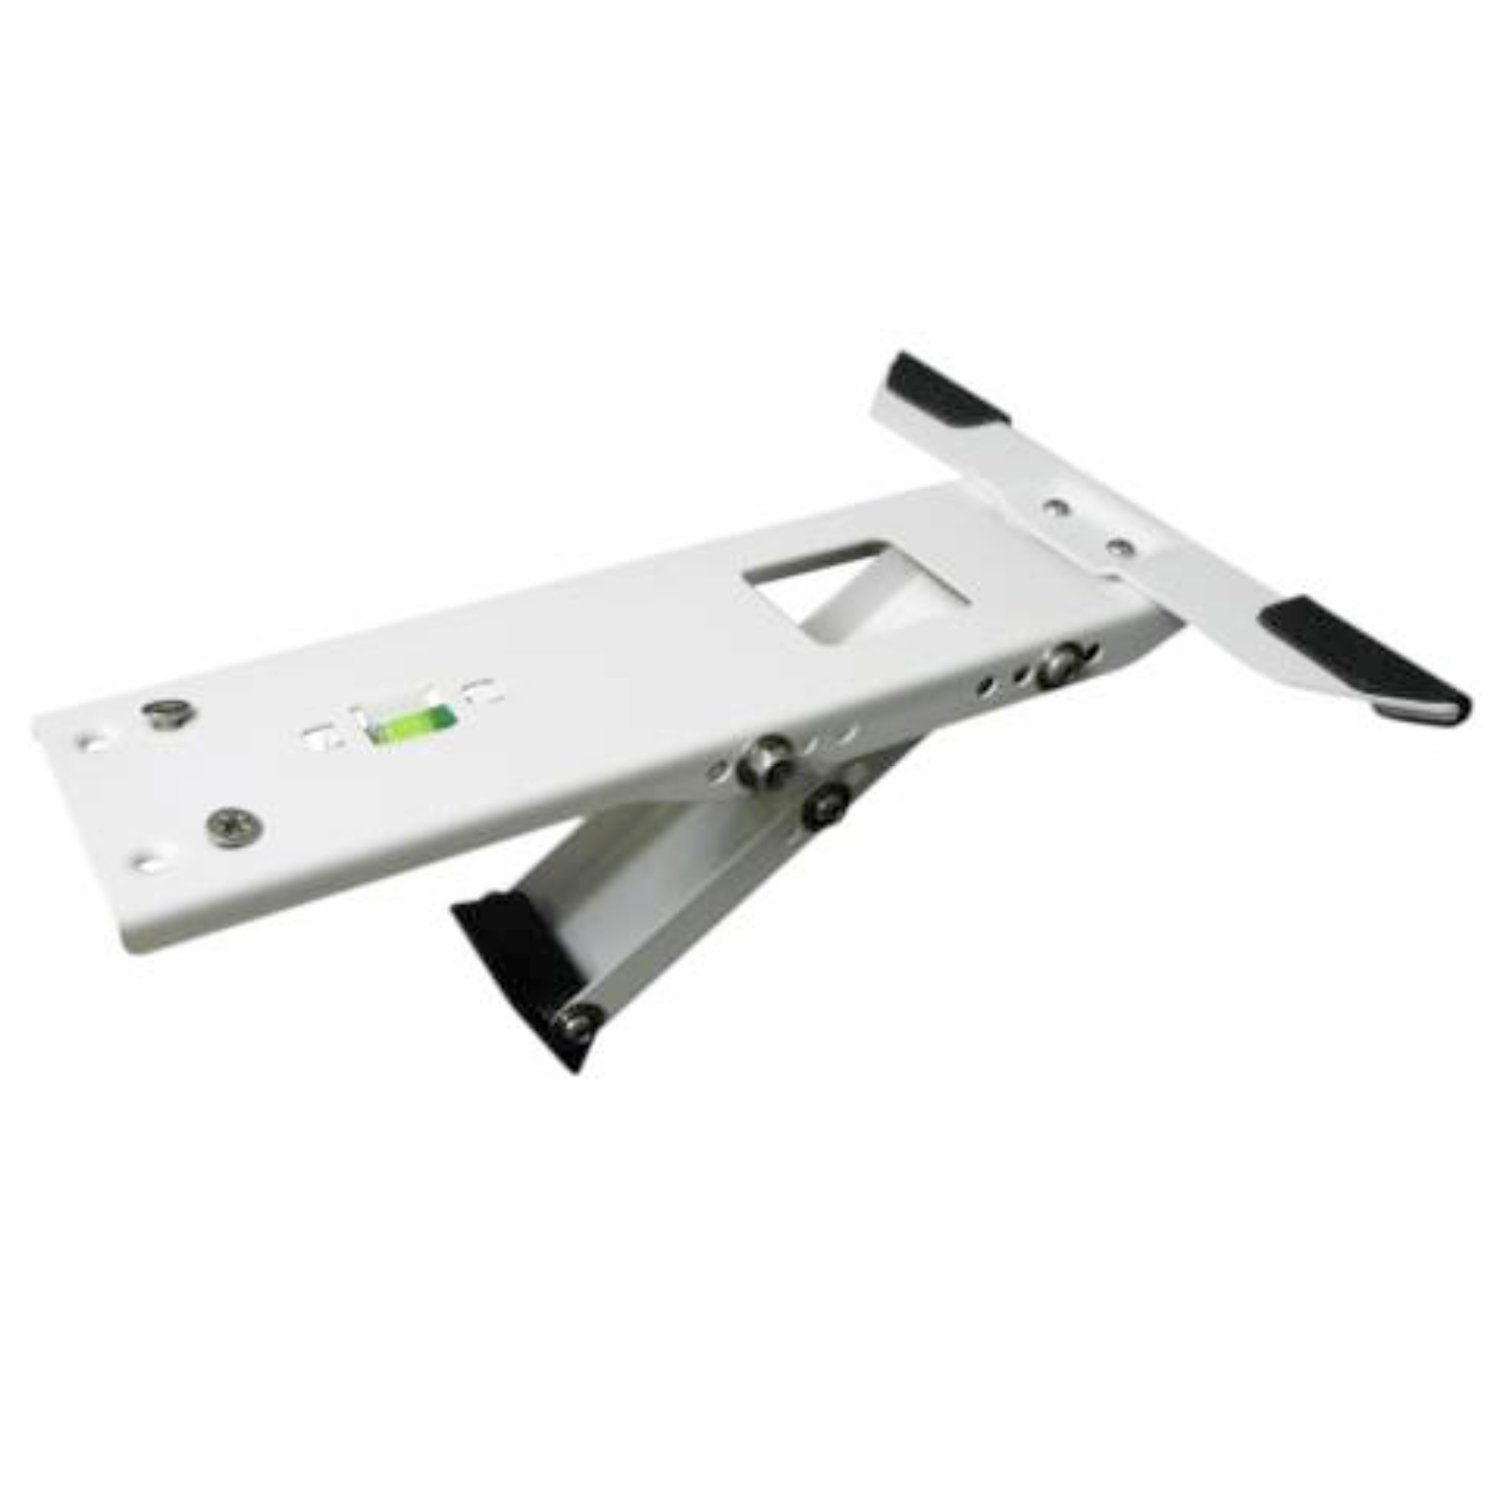 AnyMount Universal Window Air Conditioner AC Support Bracket, up to 88 lbs, Designed for 5,000 to 10,000 BTU Sized Units, Small